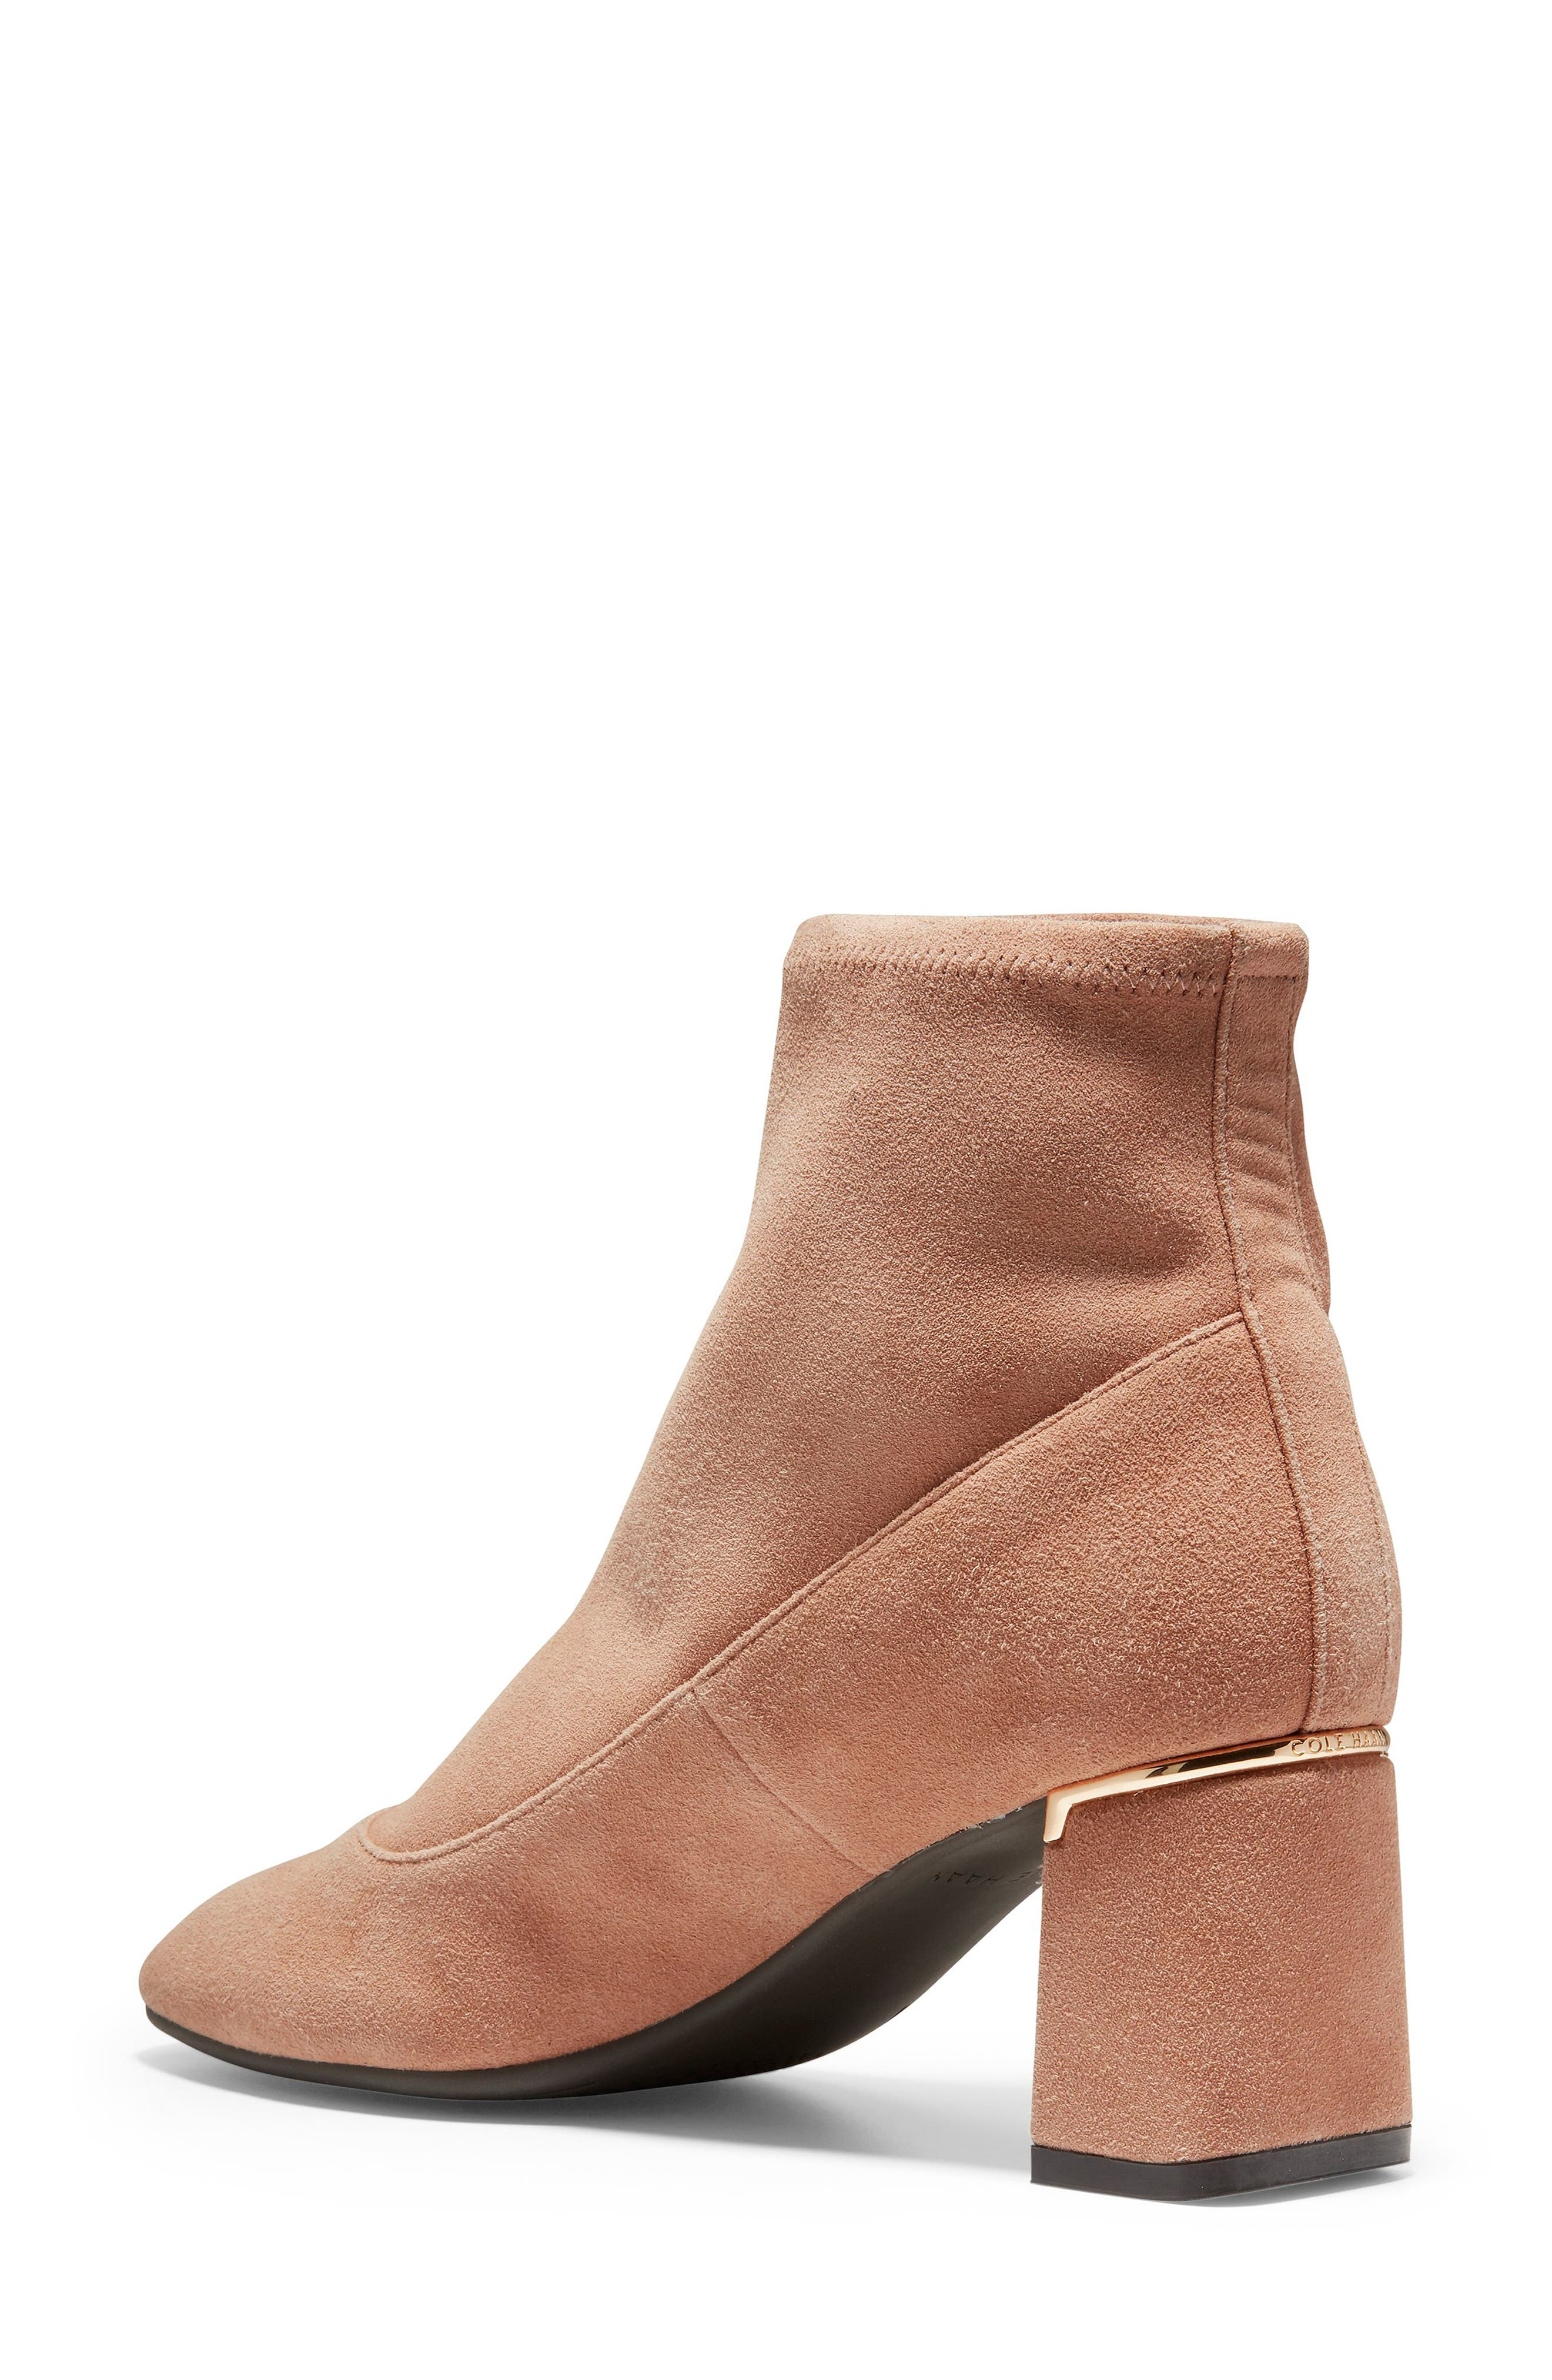 COLE HAAN, Laree Stretch Bootie, Alternate thumbnail 2, color, 200